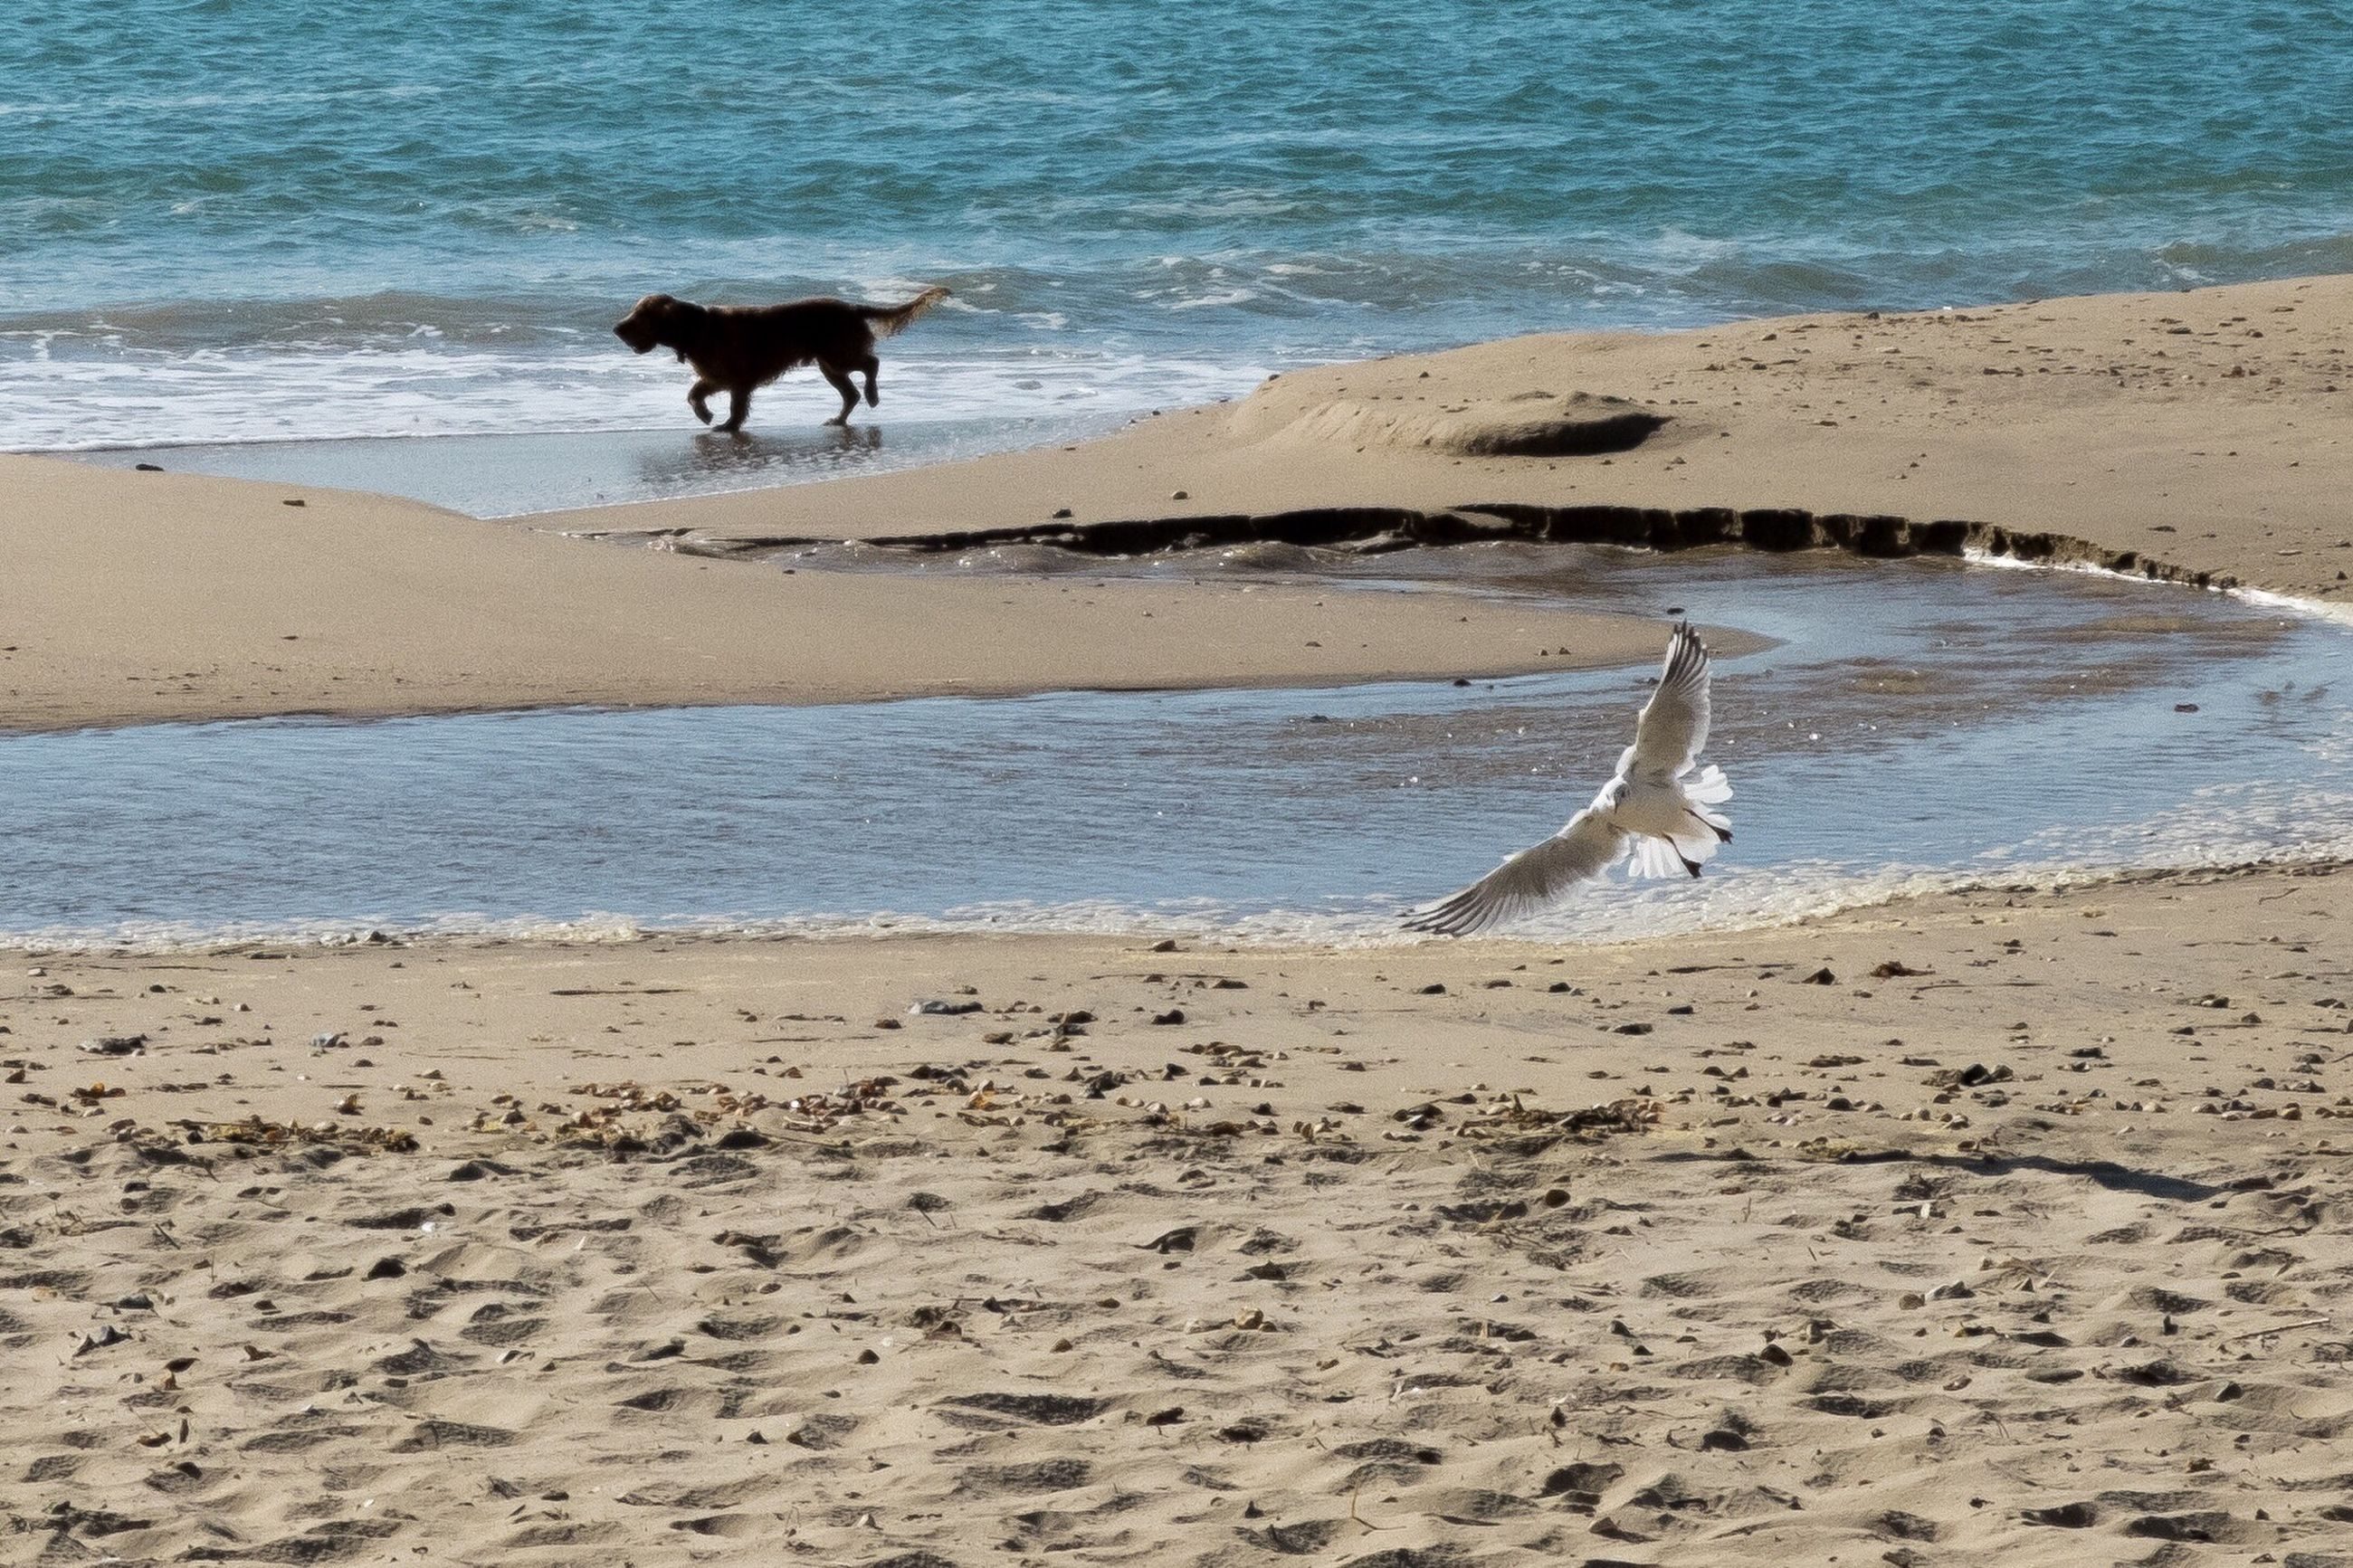 beach, sea, water, sand, animal themes, shore, one animal, horizon over water, mammal, wave, nature, tranquility, surf, tranquil scene, domestic animals, beauty in nature, day, animals in the wild, dog, scenics